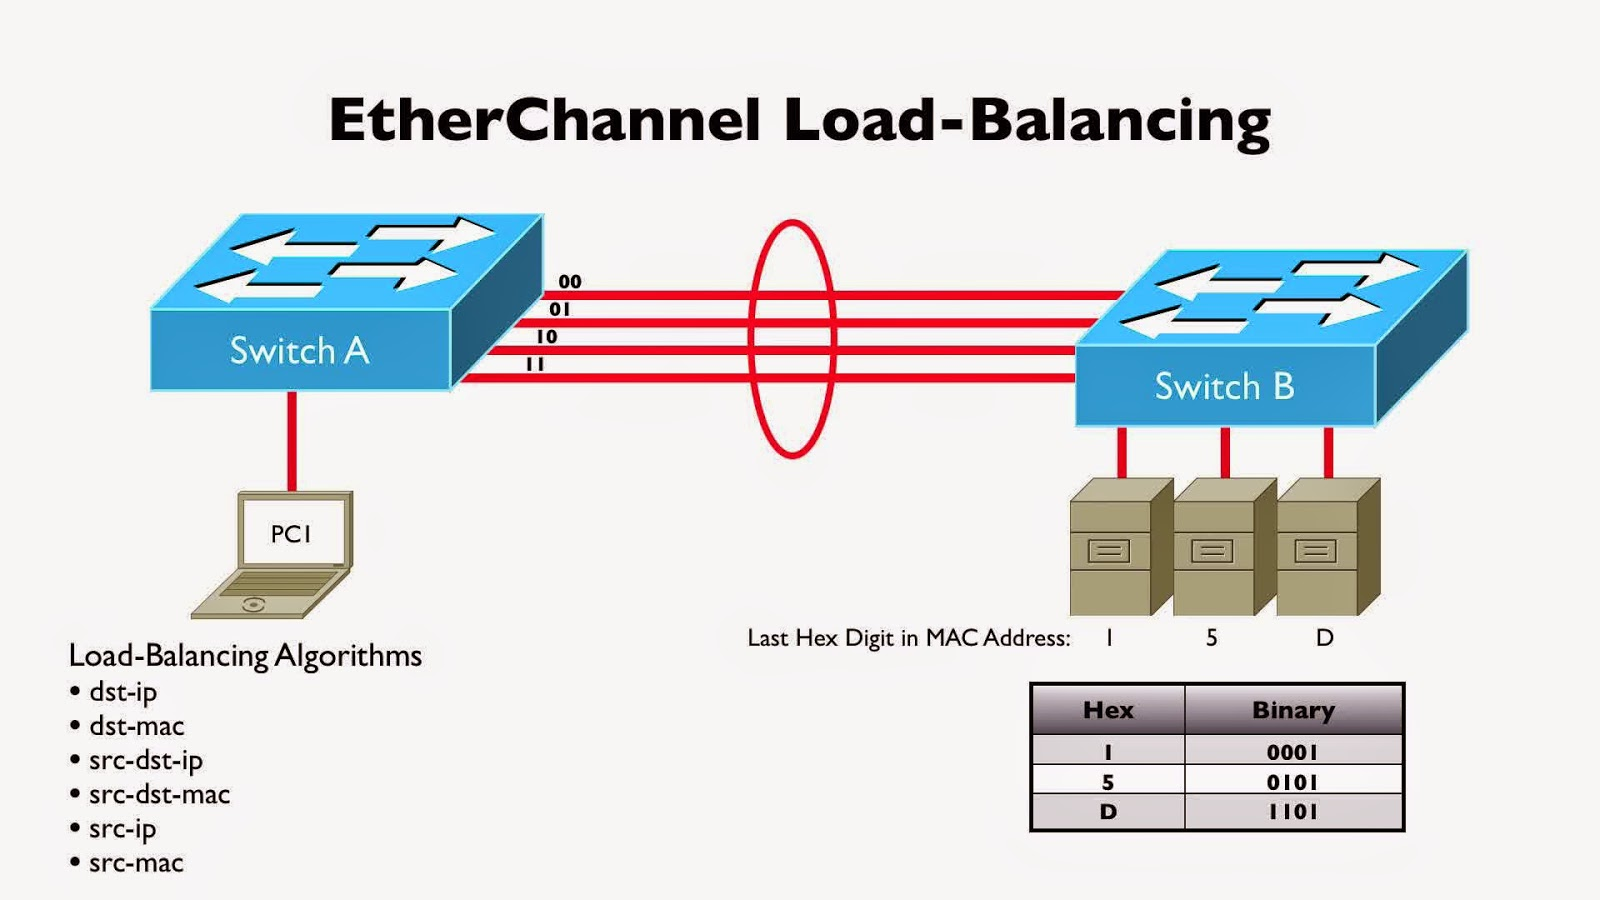 how to use ether channel in cisco